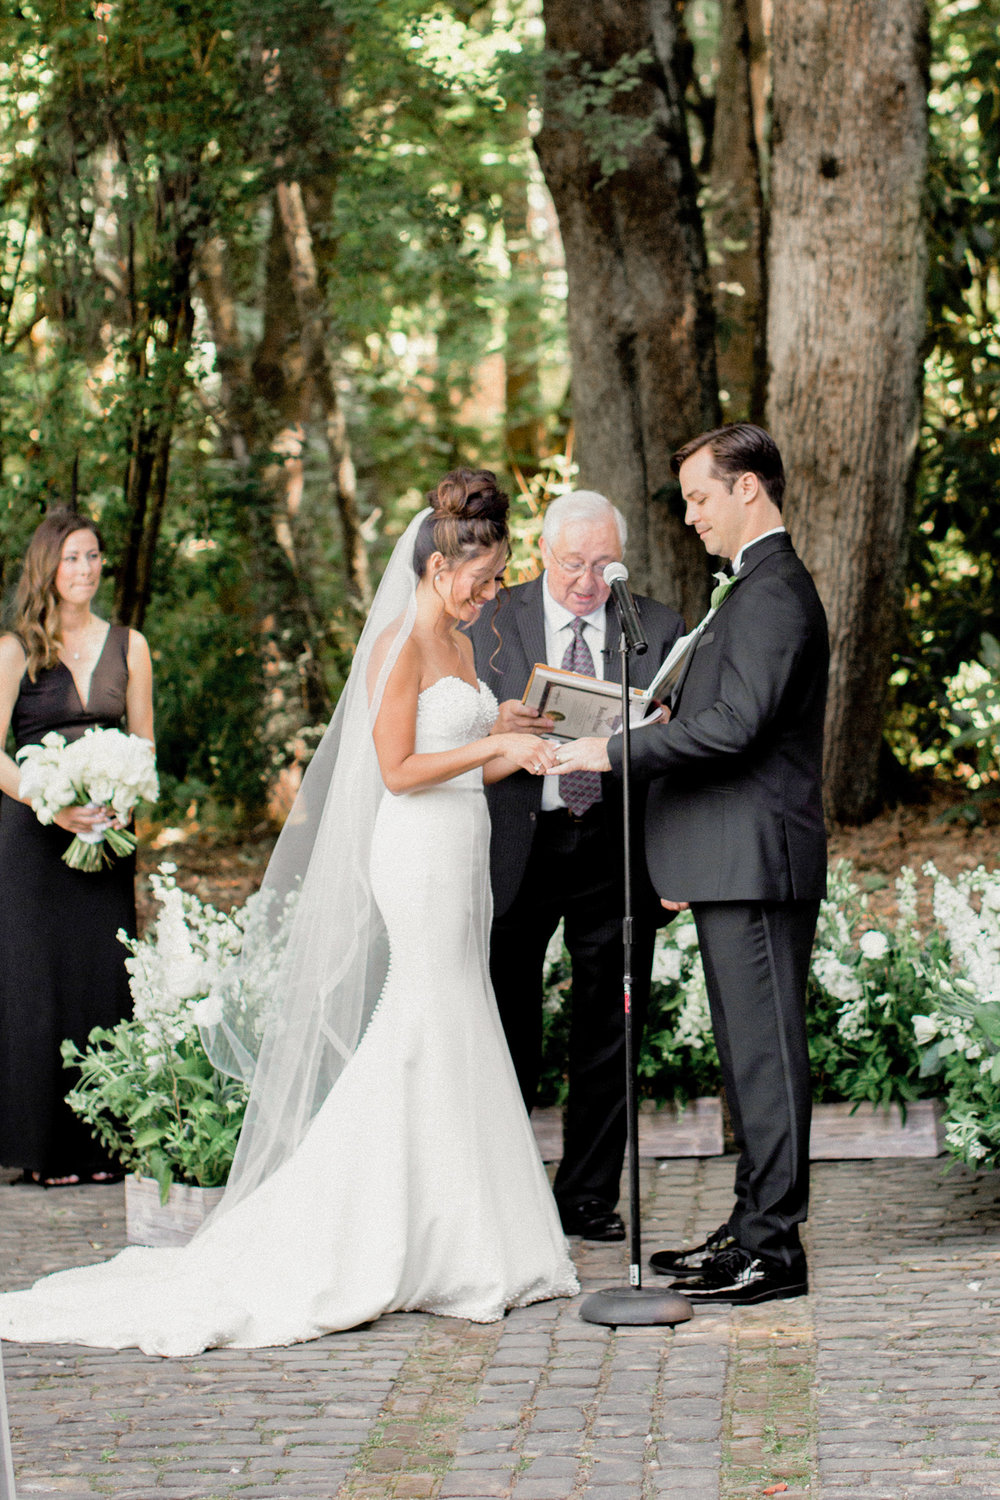 136OutliveCreative_Travel_Photographer_Videographer_Lewis&Clark_Oregon_Elegant_BlackTie_Destination_Wedding.jpg